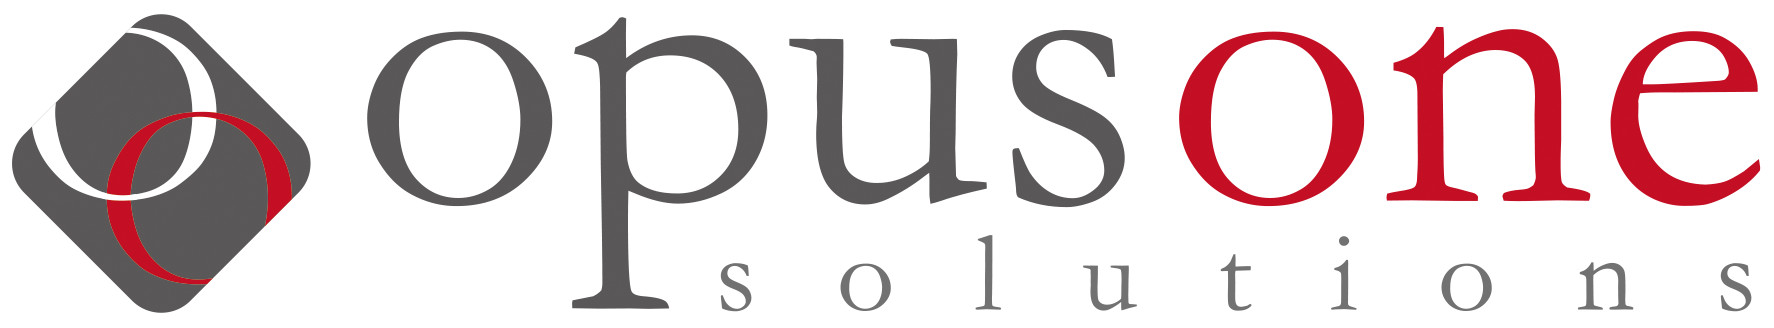 Opus One Solutions is named a 2021 Global Cleantech 100 Company for the 4th Consecutive year